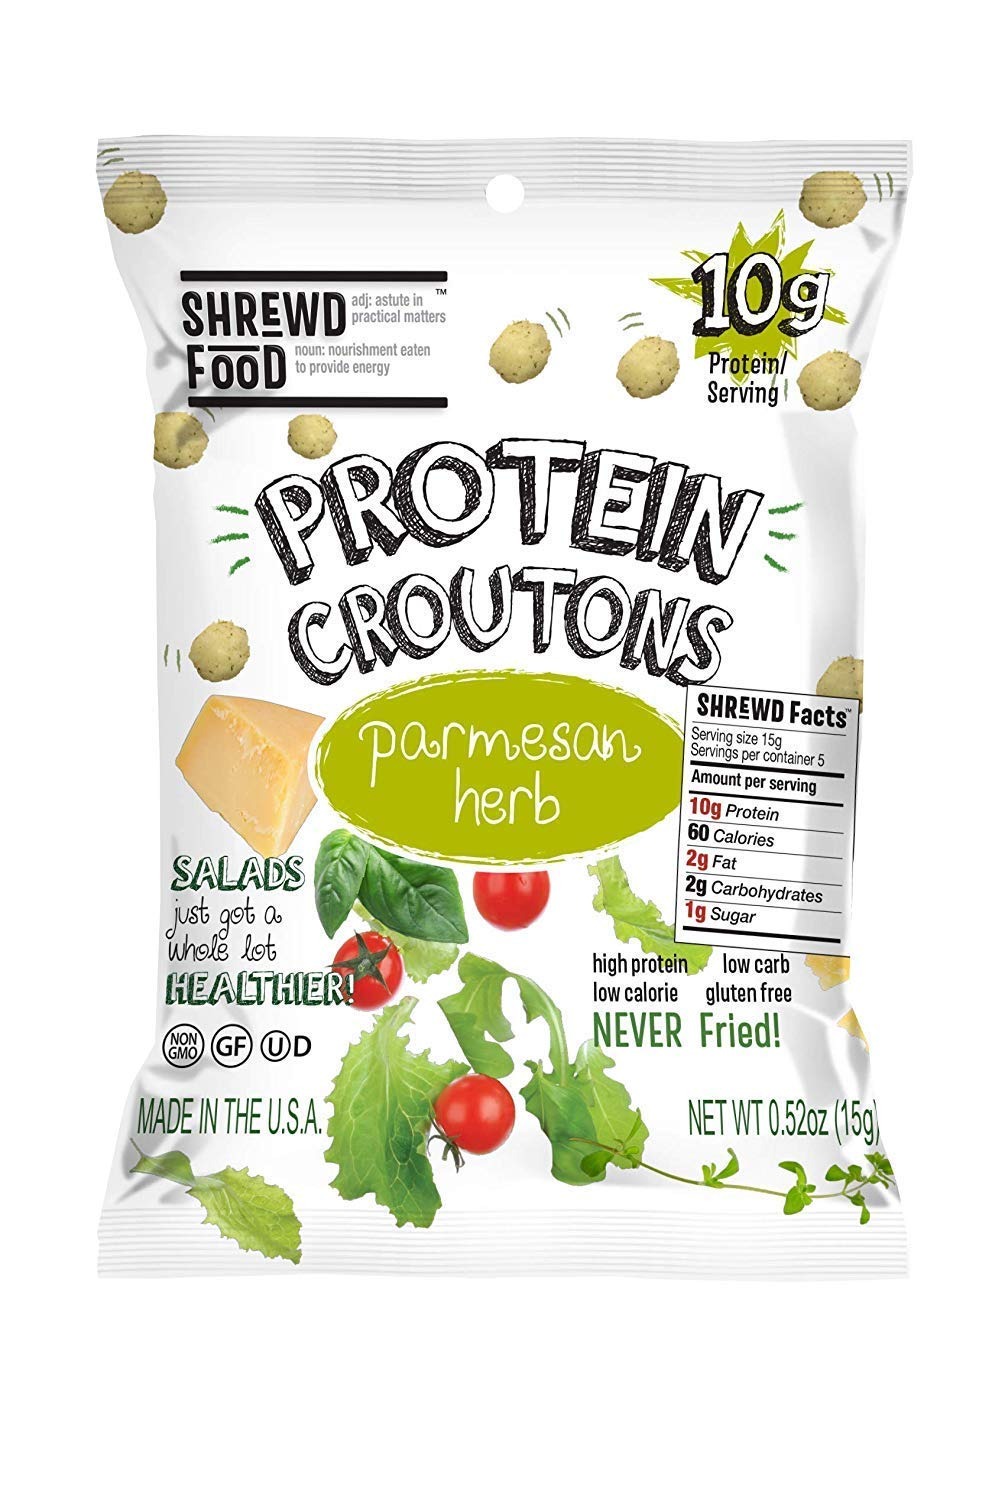 Shrewd Food Keto Croutons, Low Carb, High Protein Snacks, Real Cheese, Gluten Free Snacks, No Artificial Flavors, Peanut Free, 10g Protein per Pack, 2g Carbs, Parmesan Croutons, 10 Pack